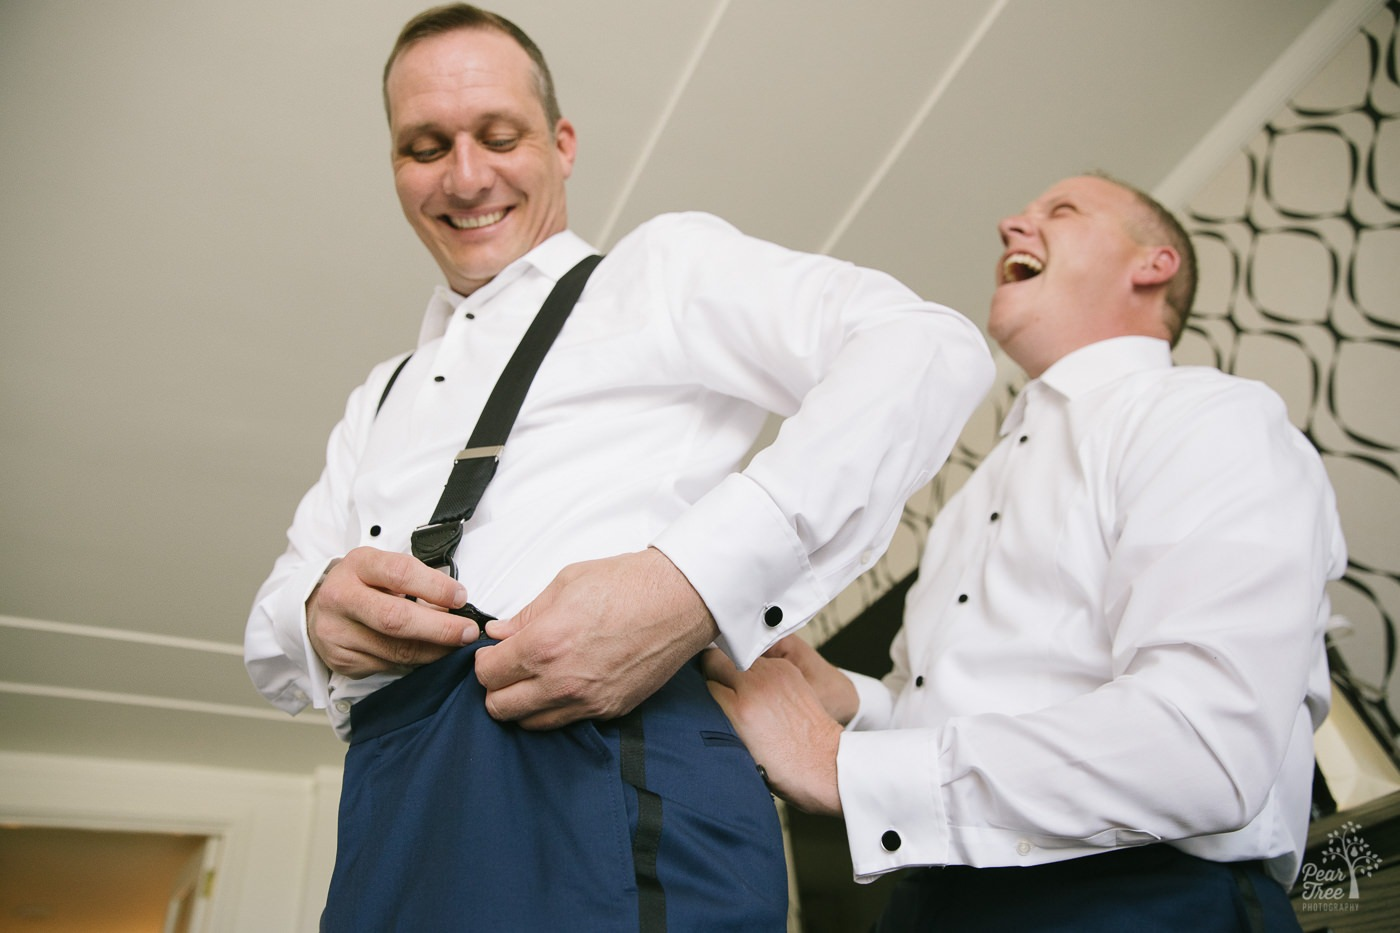 Two grooms laughing and helping fasten suspenders.